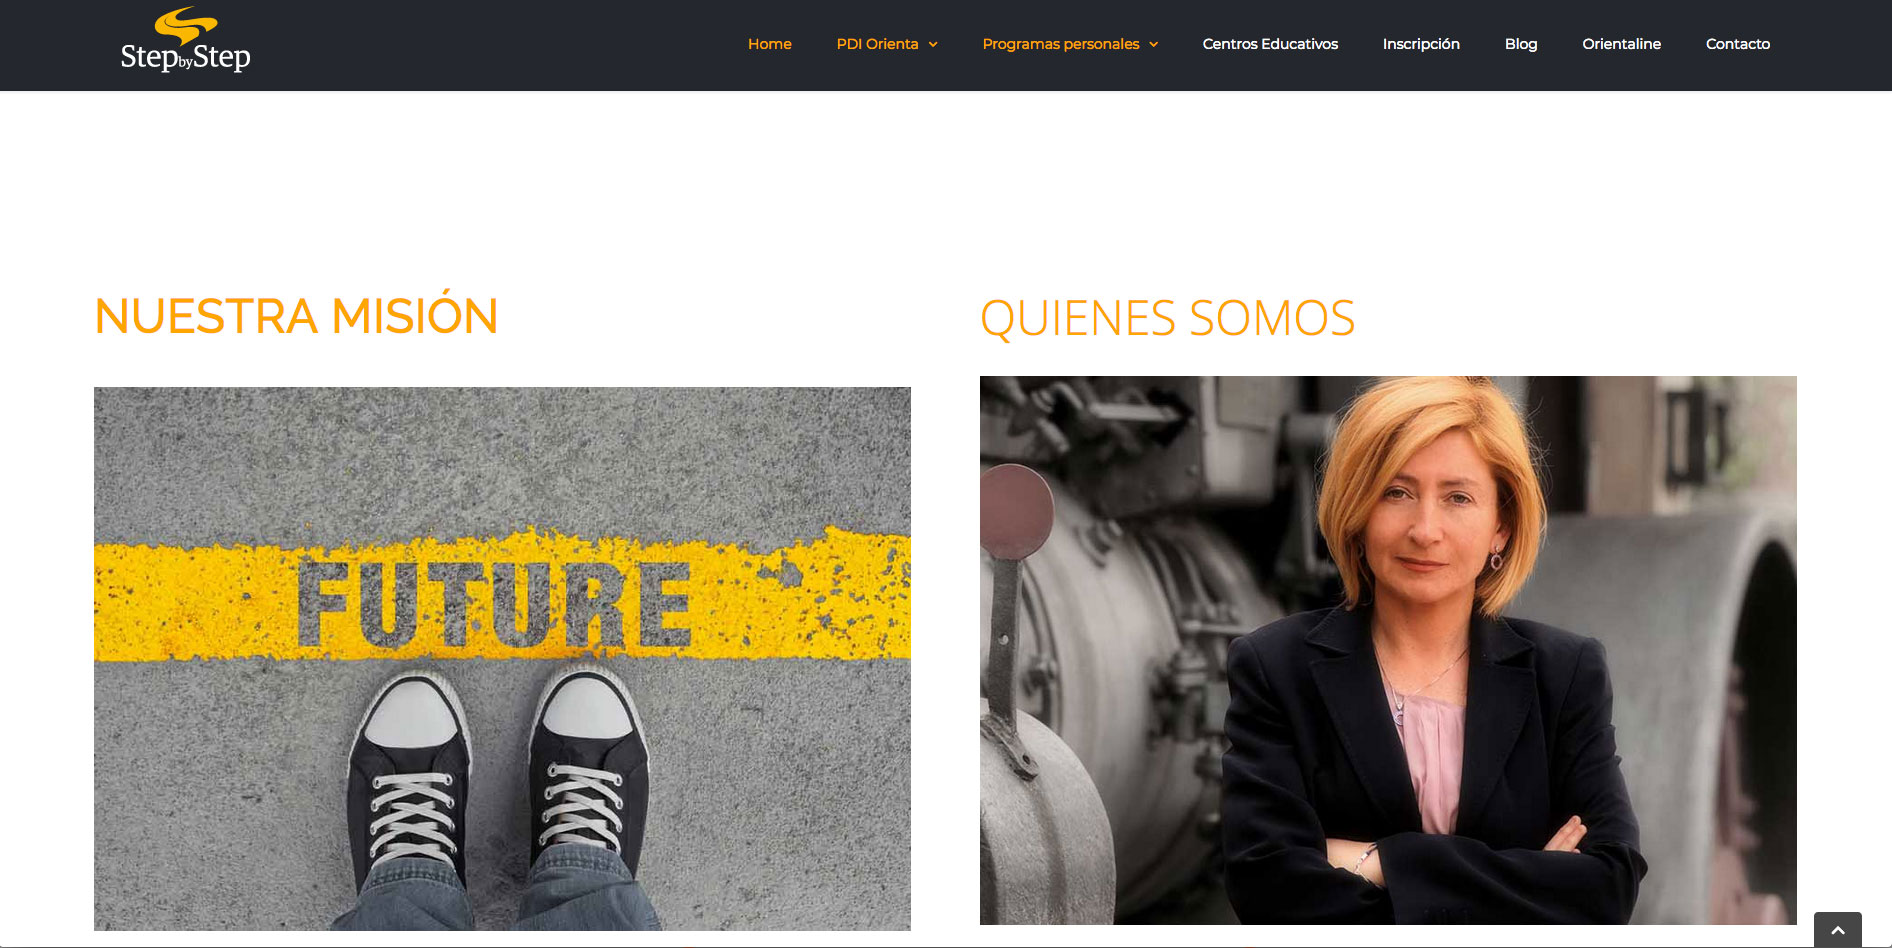 Desarrollo web para Step by Step